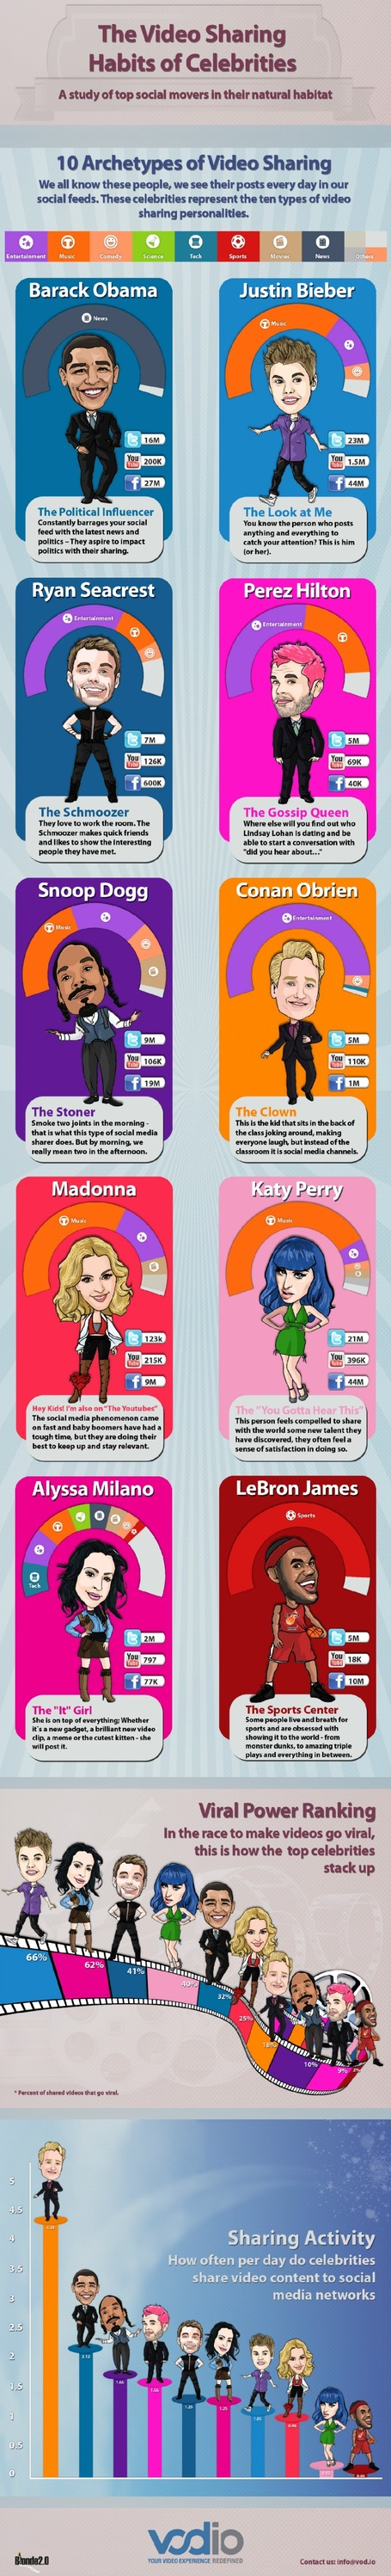 How Social Media Savvy Celebrities Share Video [INFOGRAPHIC] | MarketingHits | Scoop.it